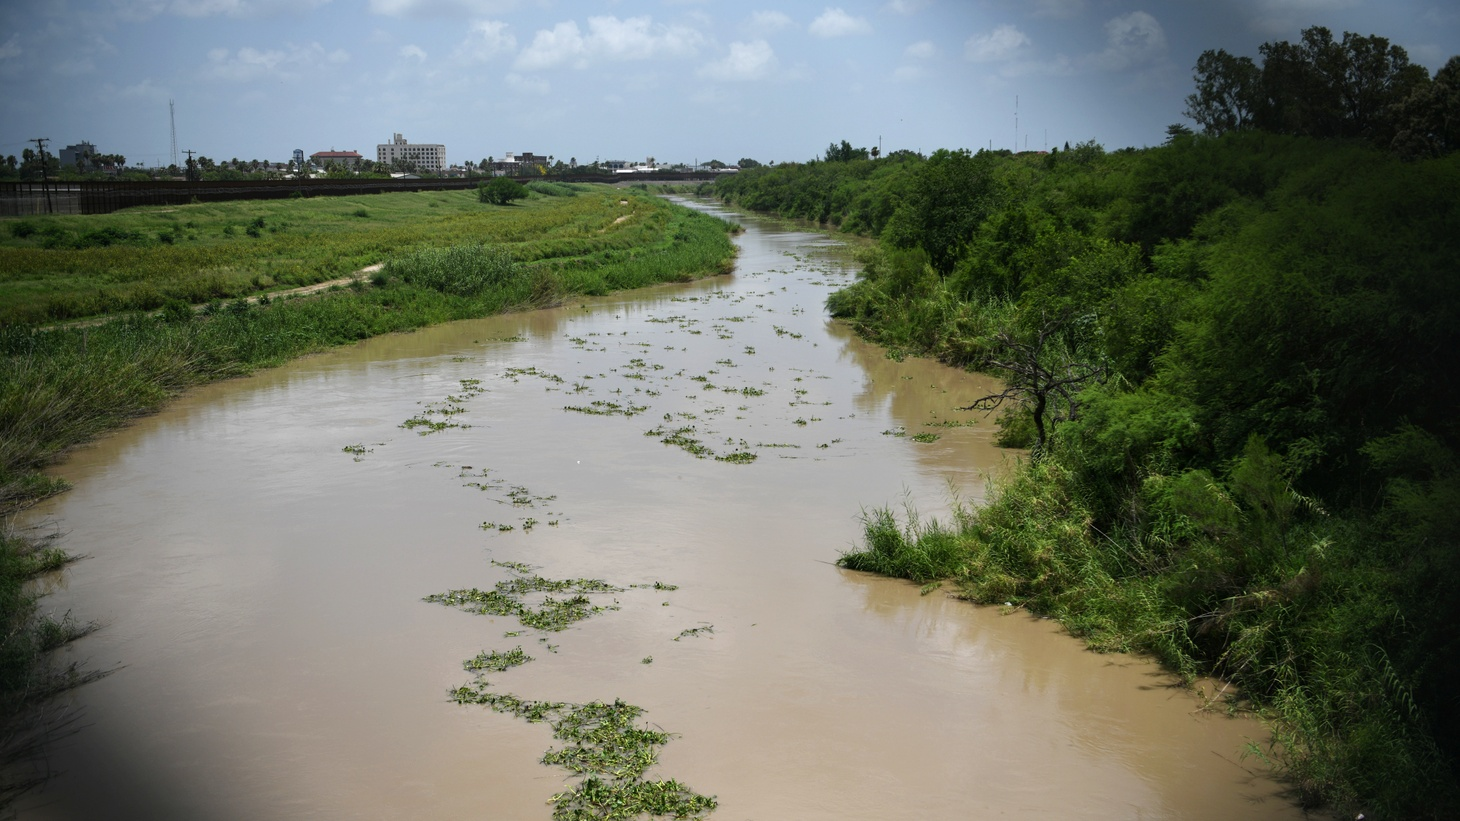 The Rio Grande, near the location where the bodies of Salvadoran migrant Oscar Alberto Martinez Ramirez and his 23-month old daughter Valeria were found after they drowned, is pictured from the Mexican side of the Brownsville-Matamoros International Bridge at the U.S.-Mexico border in Matamoros, Tamaulipas, Mexico, June 26, 2019. Picture taken through a fence.